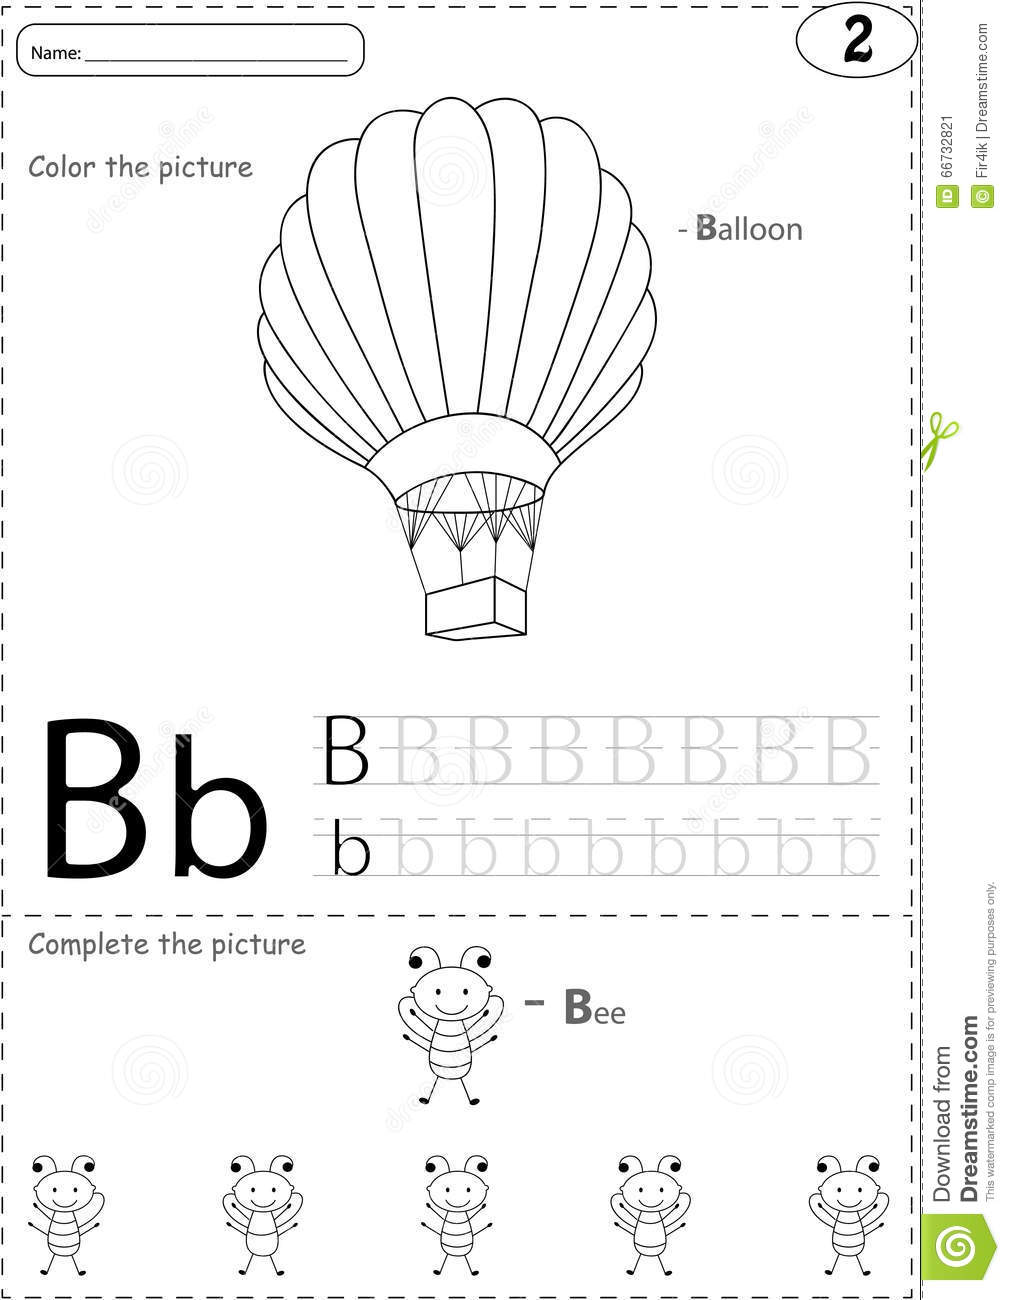 Cartoon Balloon And Bee. Alphabet Tracing Worksheet